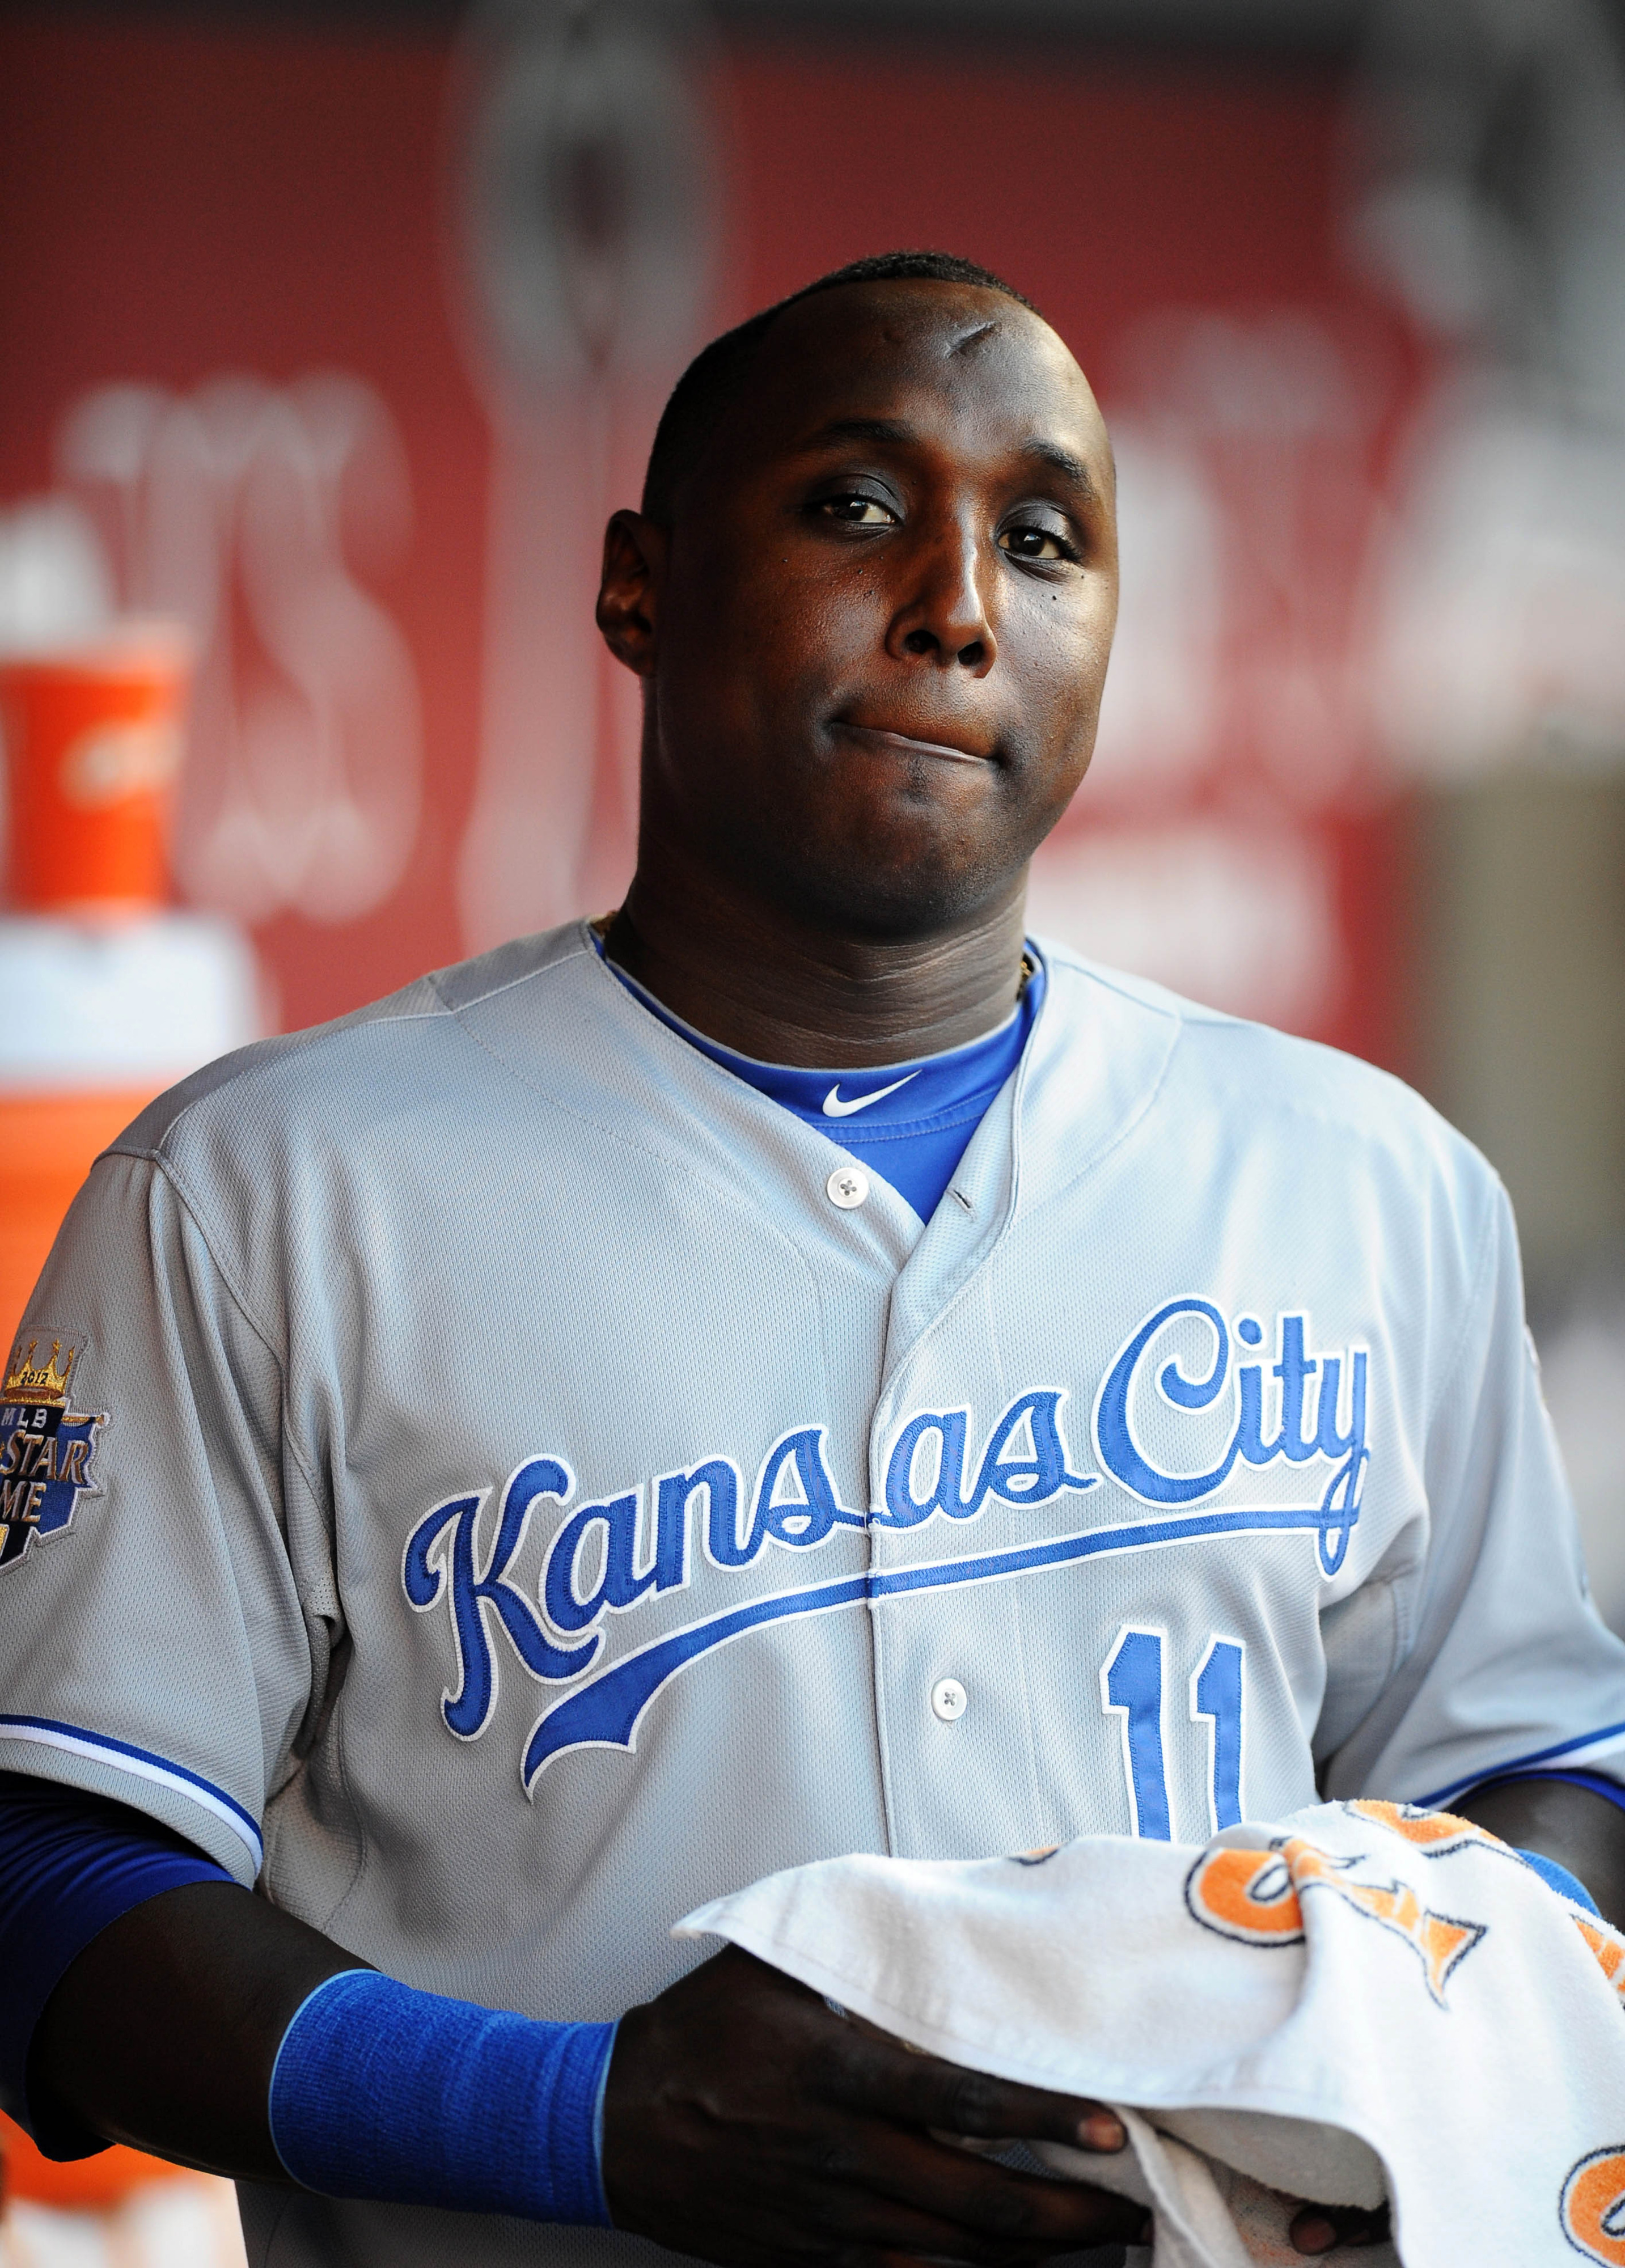 Jul 24, 2012; Anaheim, CA, USA; Kansas City Royals second baseman Yuniesky Betancourt (11) in the dug out prior to the game against the Los Angeles Angels at Angel Stadium of Anaheim. Mandatory Credit: Kelvin Kuo-US PRESSWIRE